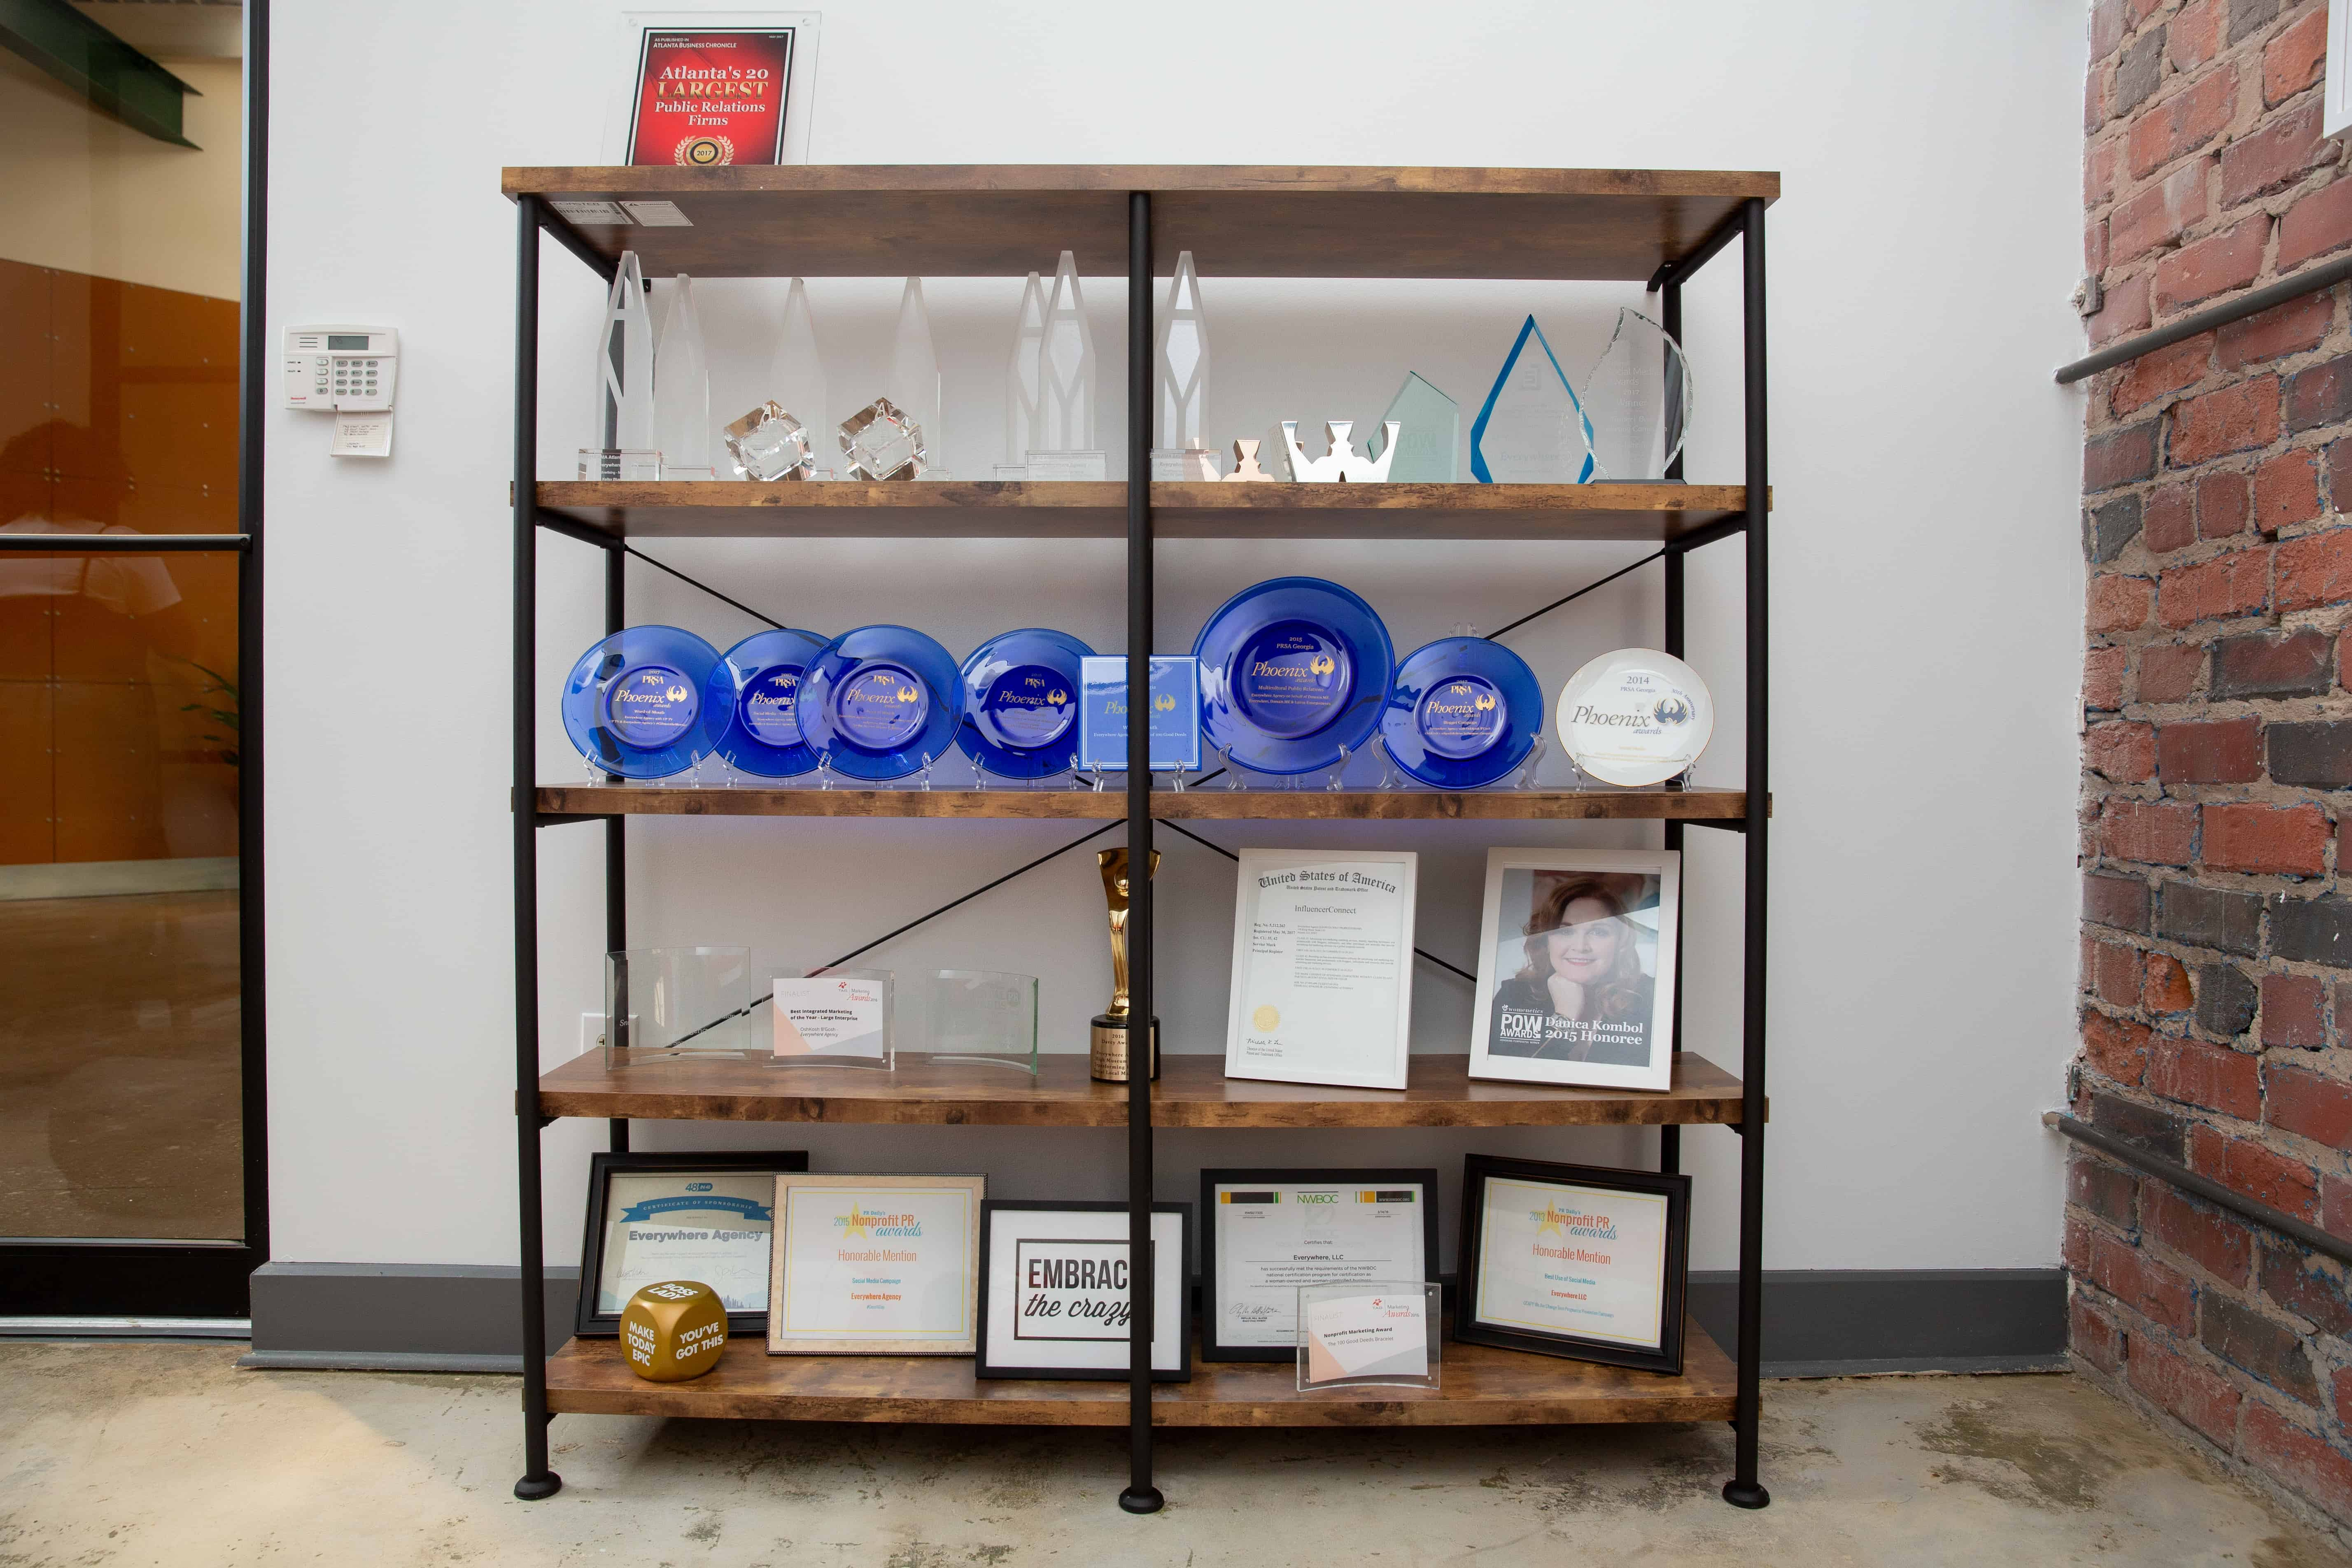 Everywhere's Awards and Accolades Featured in the Malala Lounge